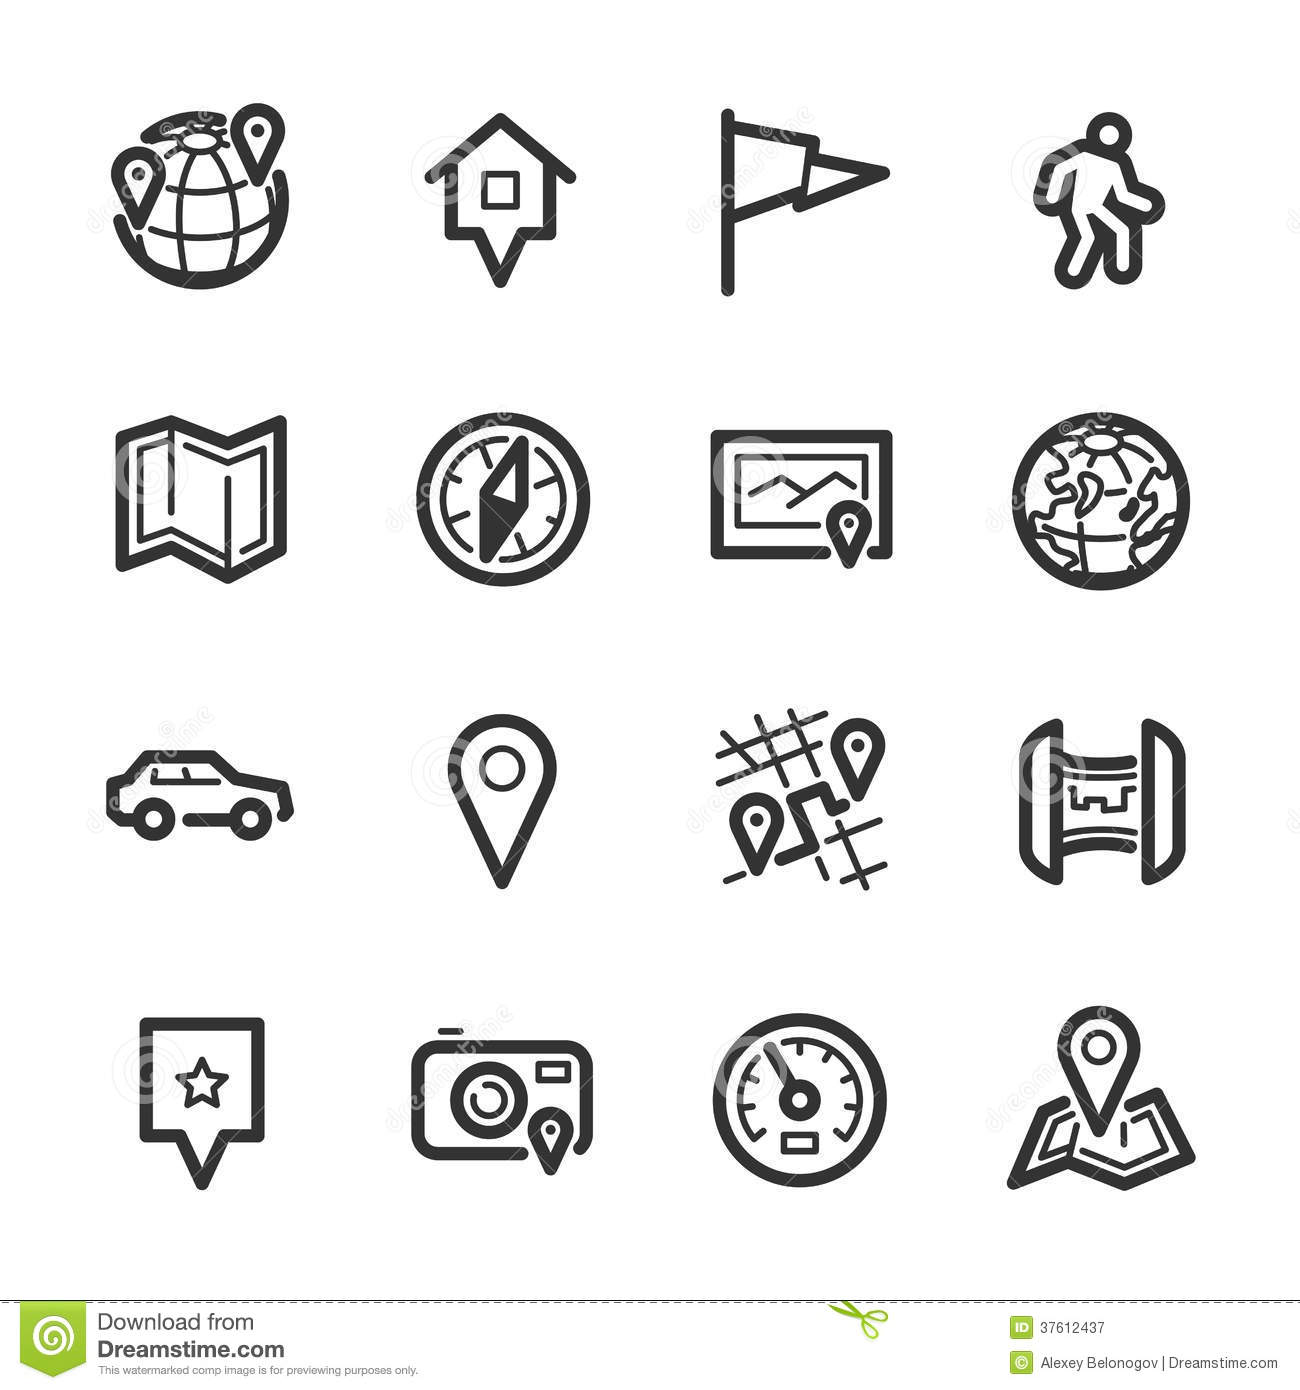 Maps and navigation icons – Bazza series